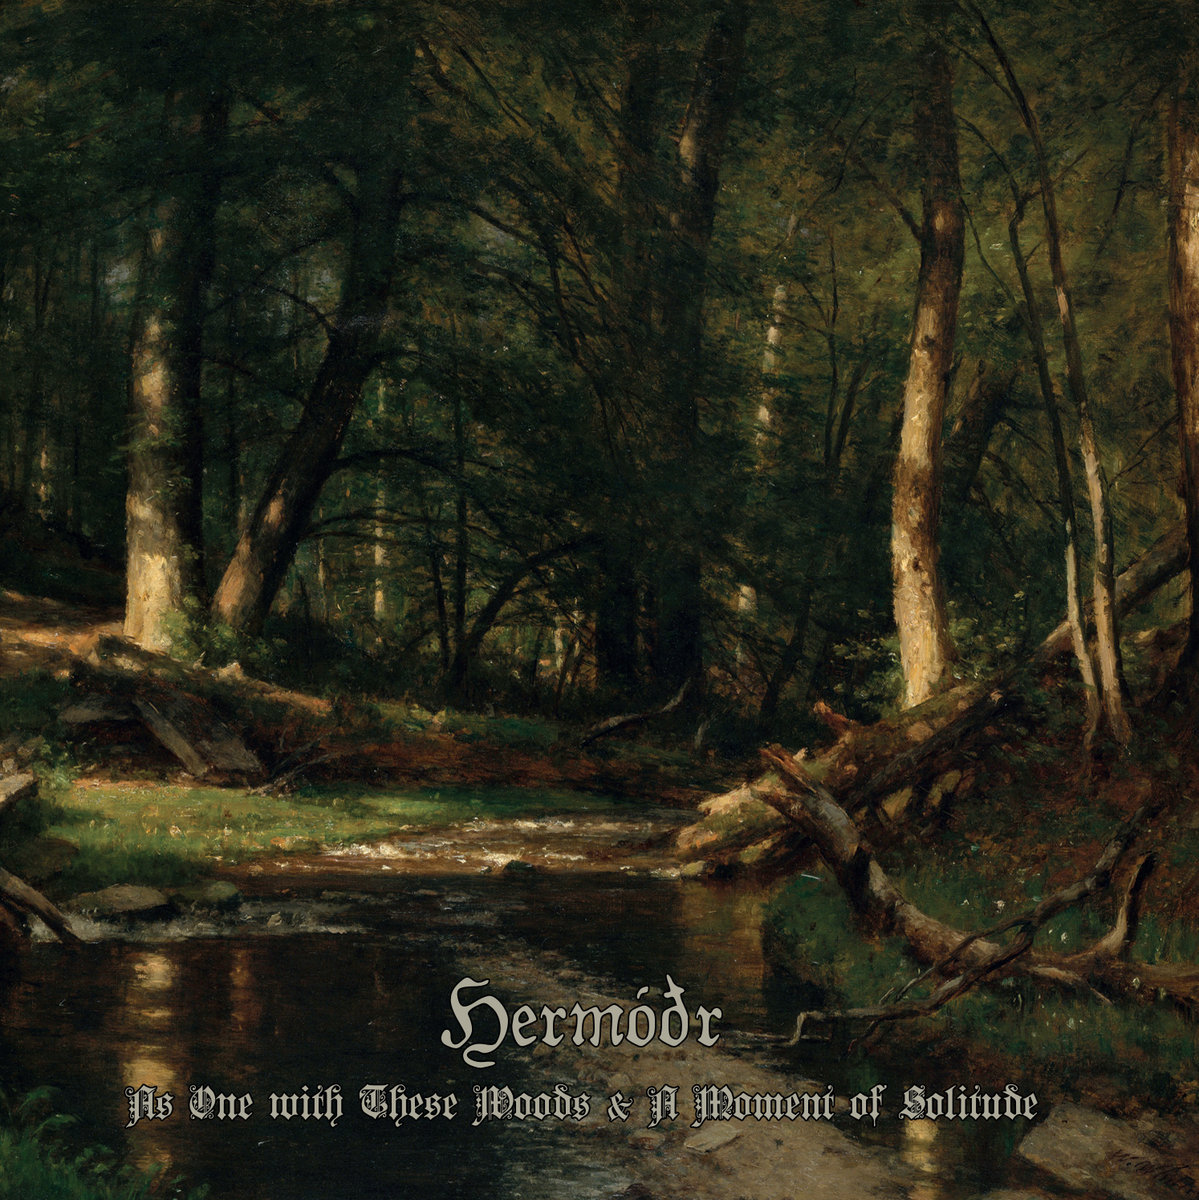 Hermodr - As One with These Woods & A Moment of Solitude  (Digipak)